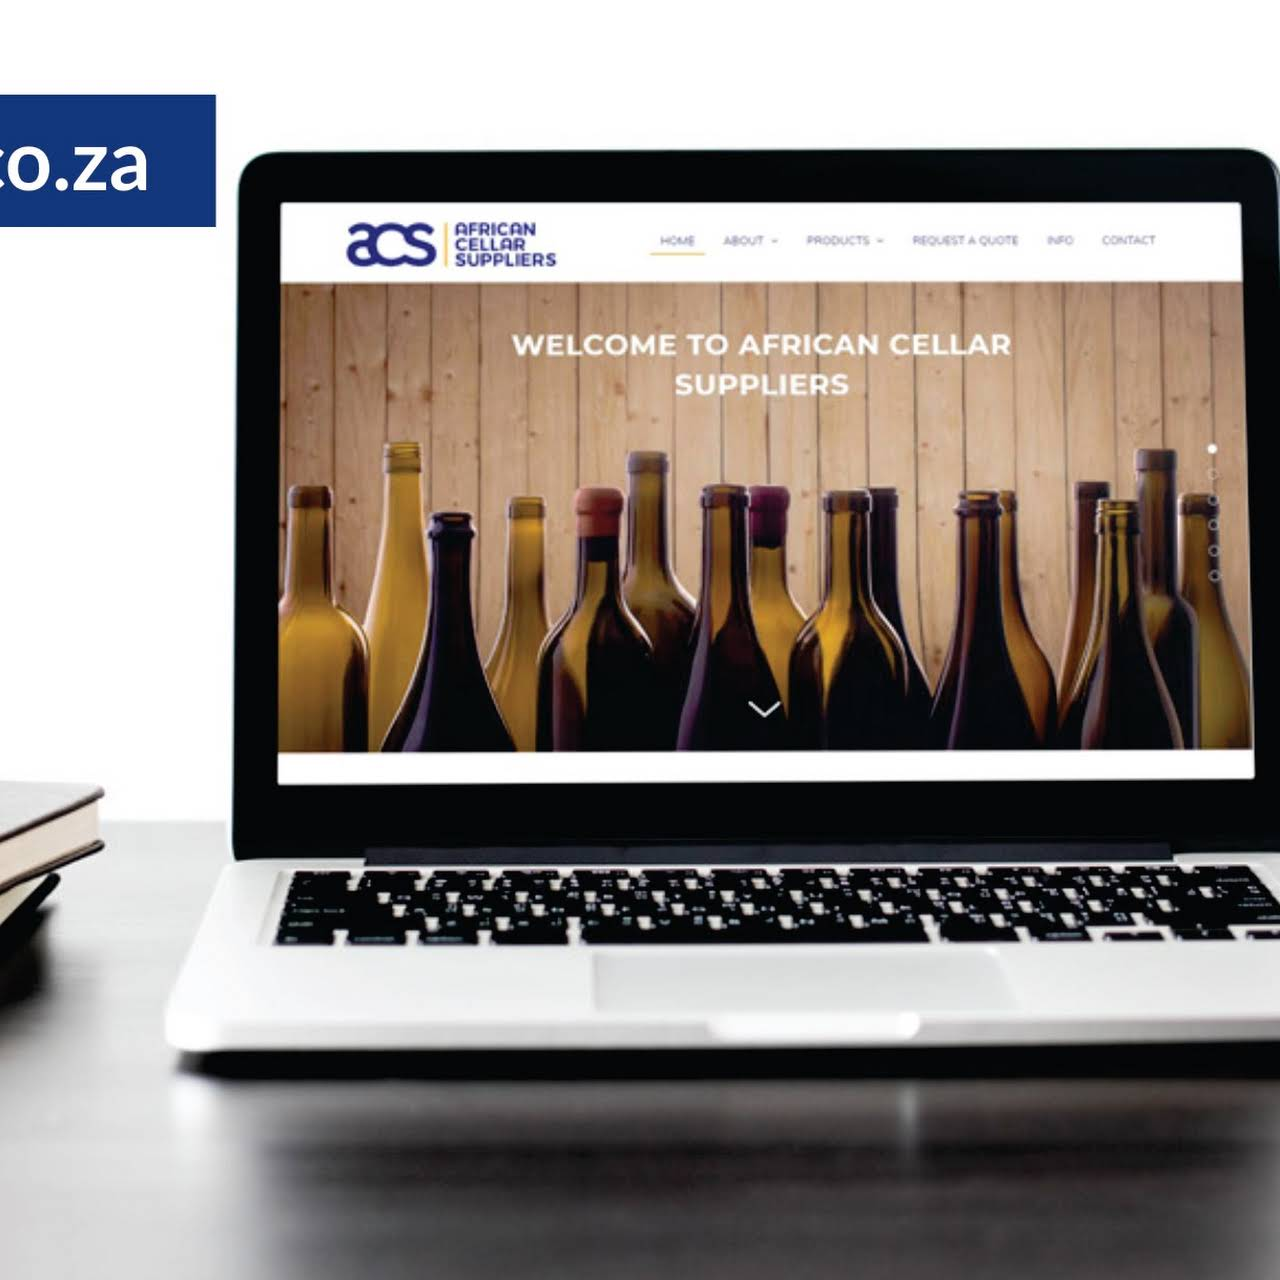 African Cellar Suppliers - Providing Quality packaging to the wine